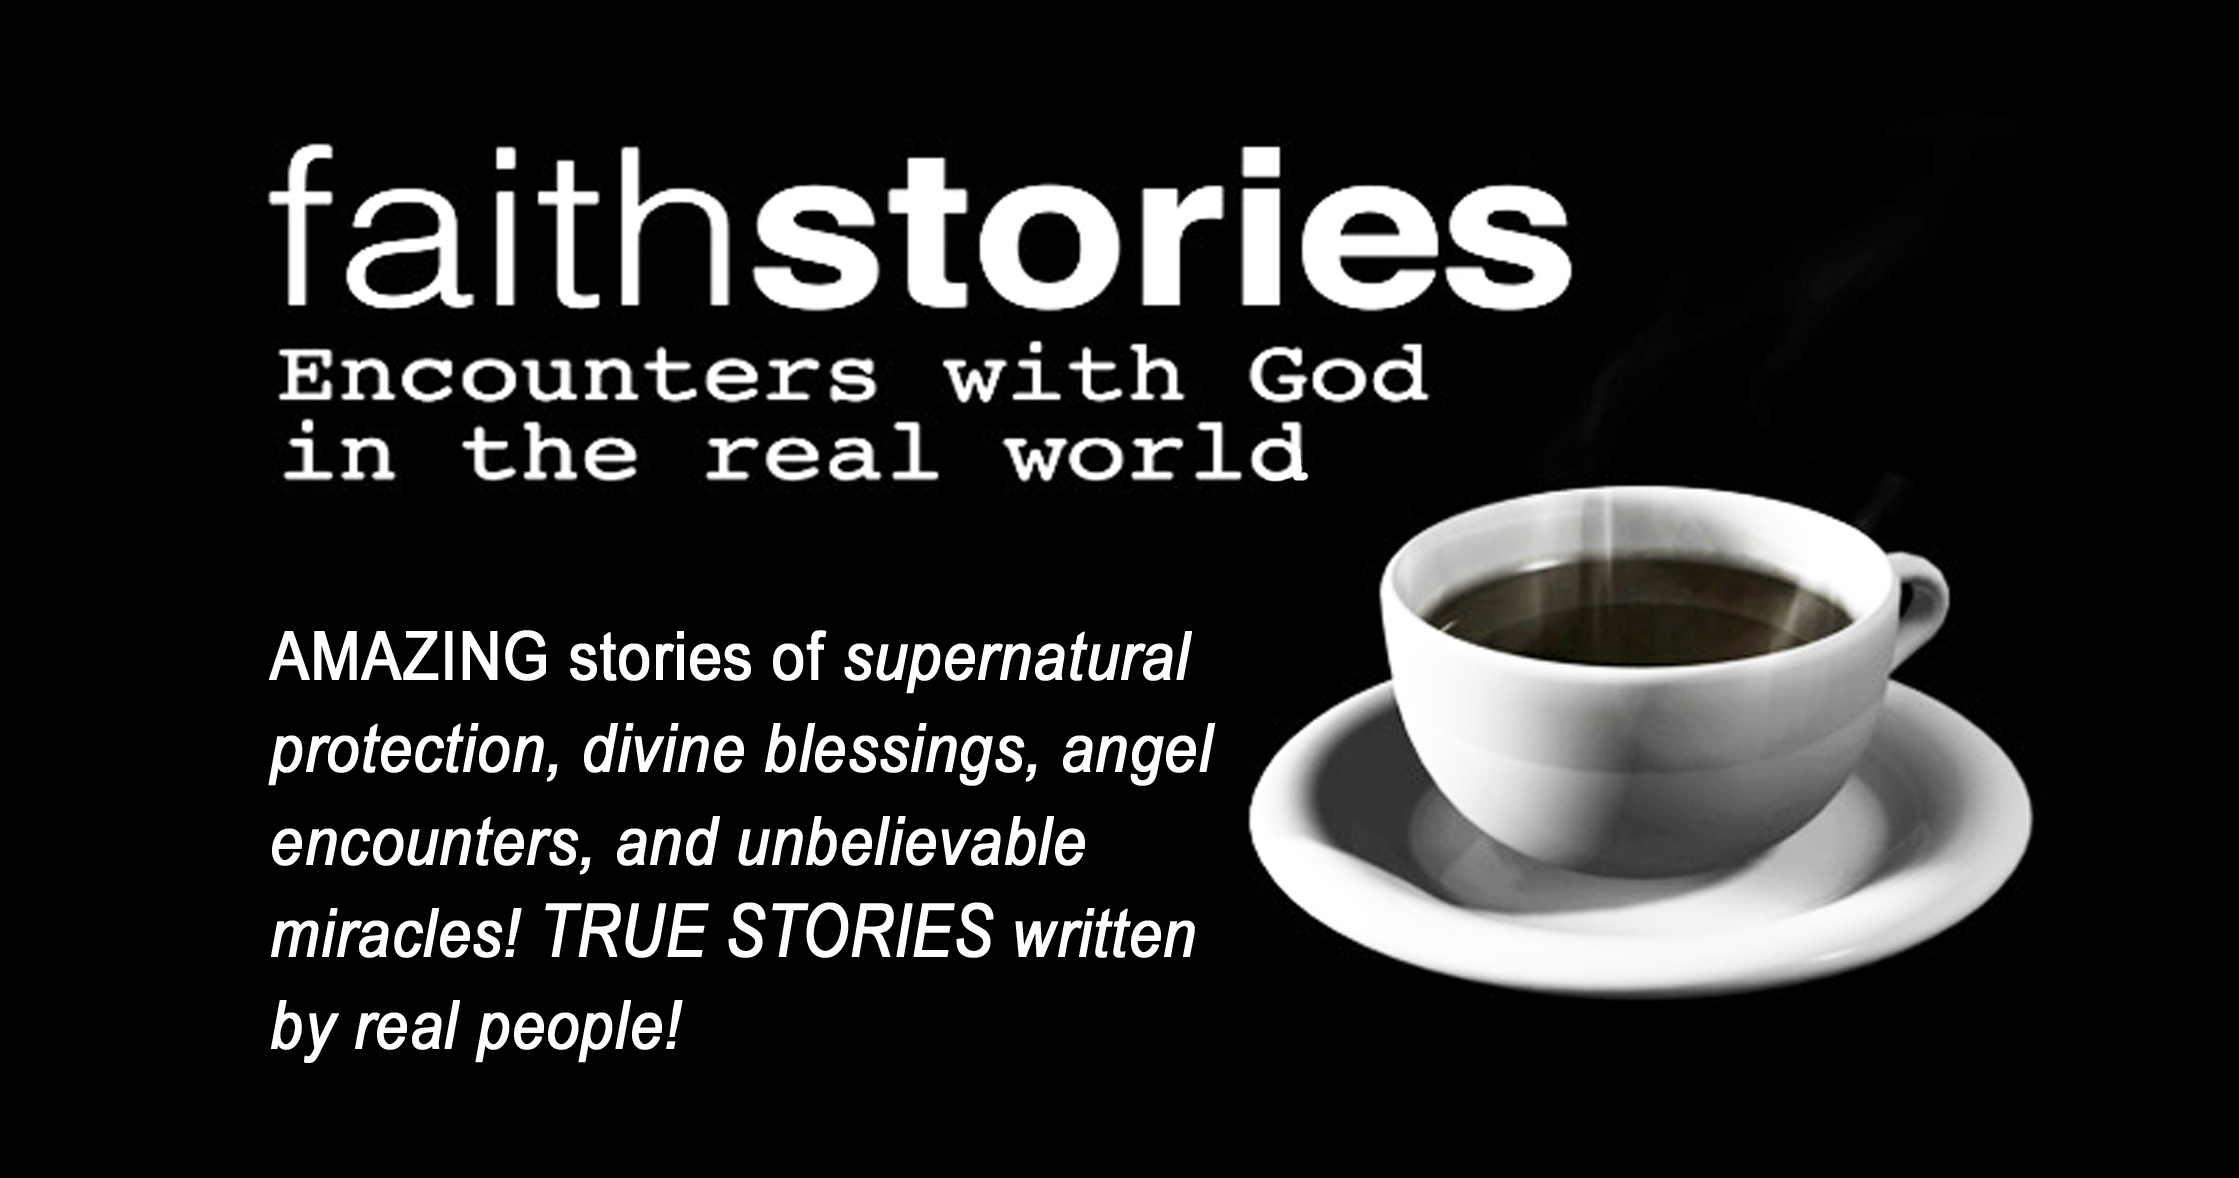 faith stories_encounters with God and Jesus.jpg